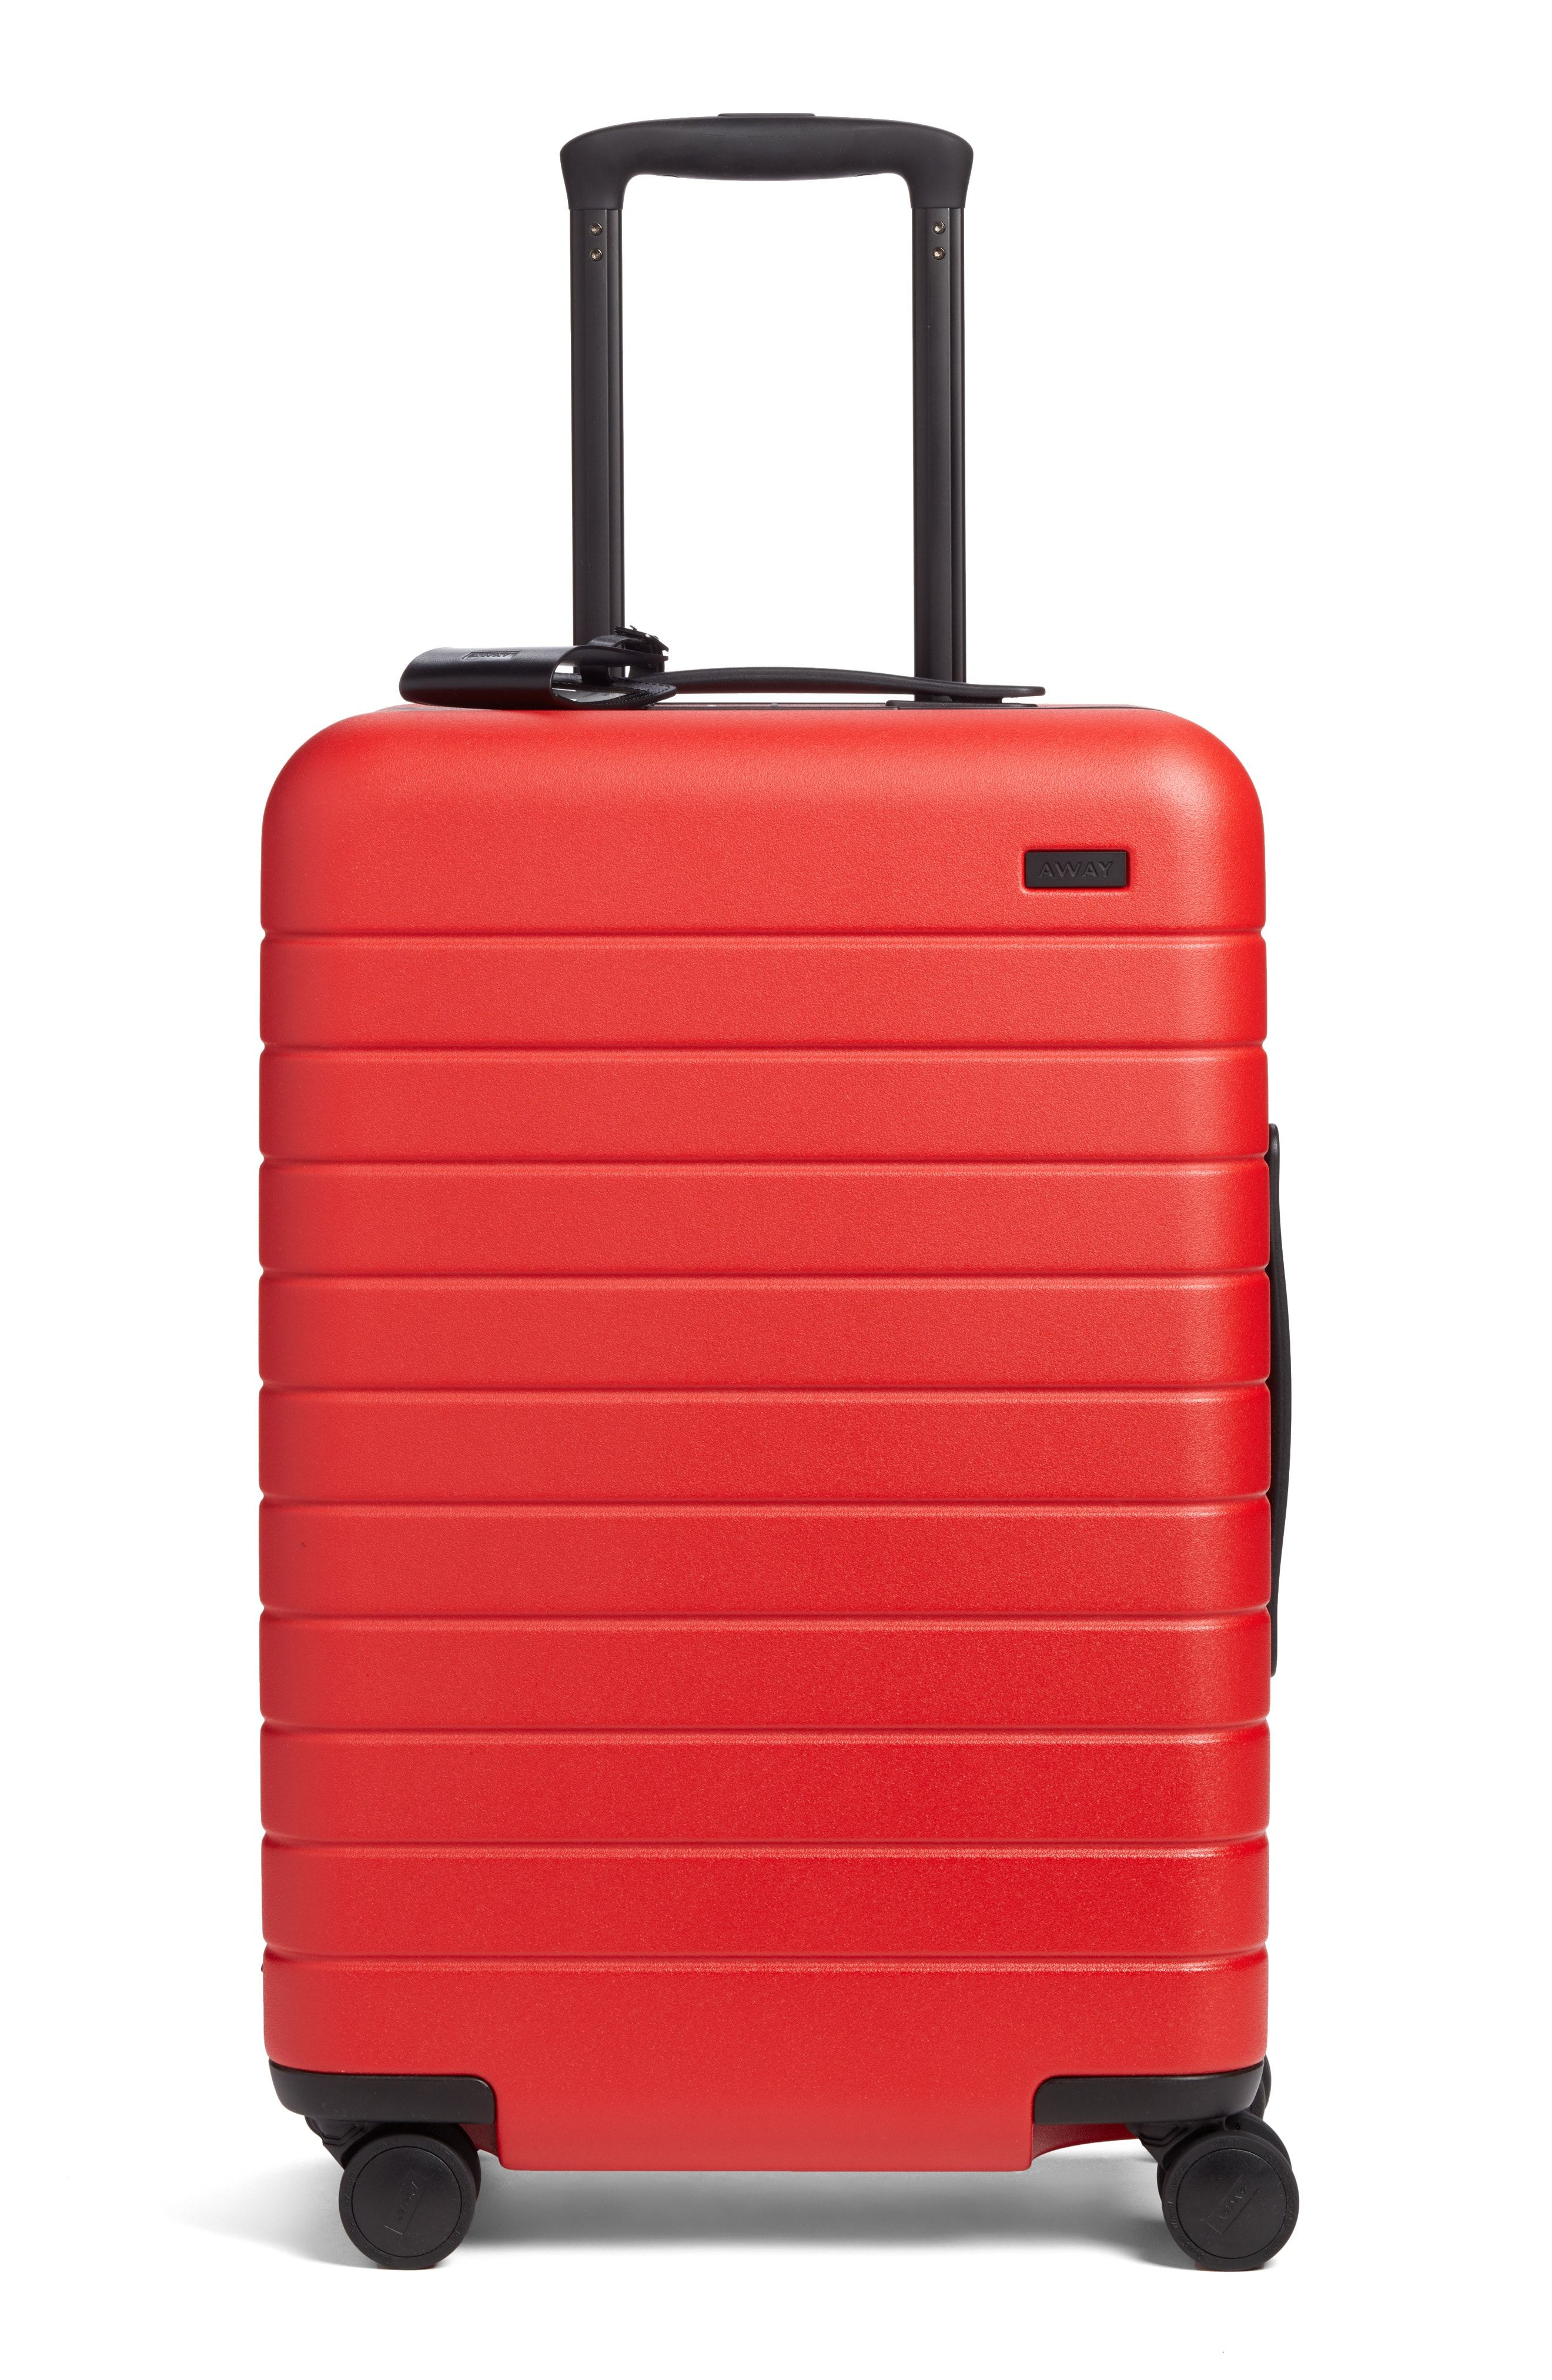 1261764298f Away Luggage at Nordstrom - Buy Away Suitcases in Yellow, Blue, or Red at  Nordstrom